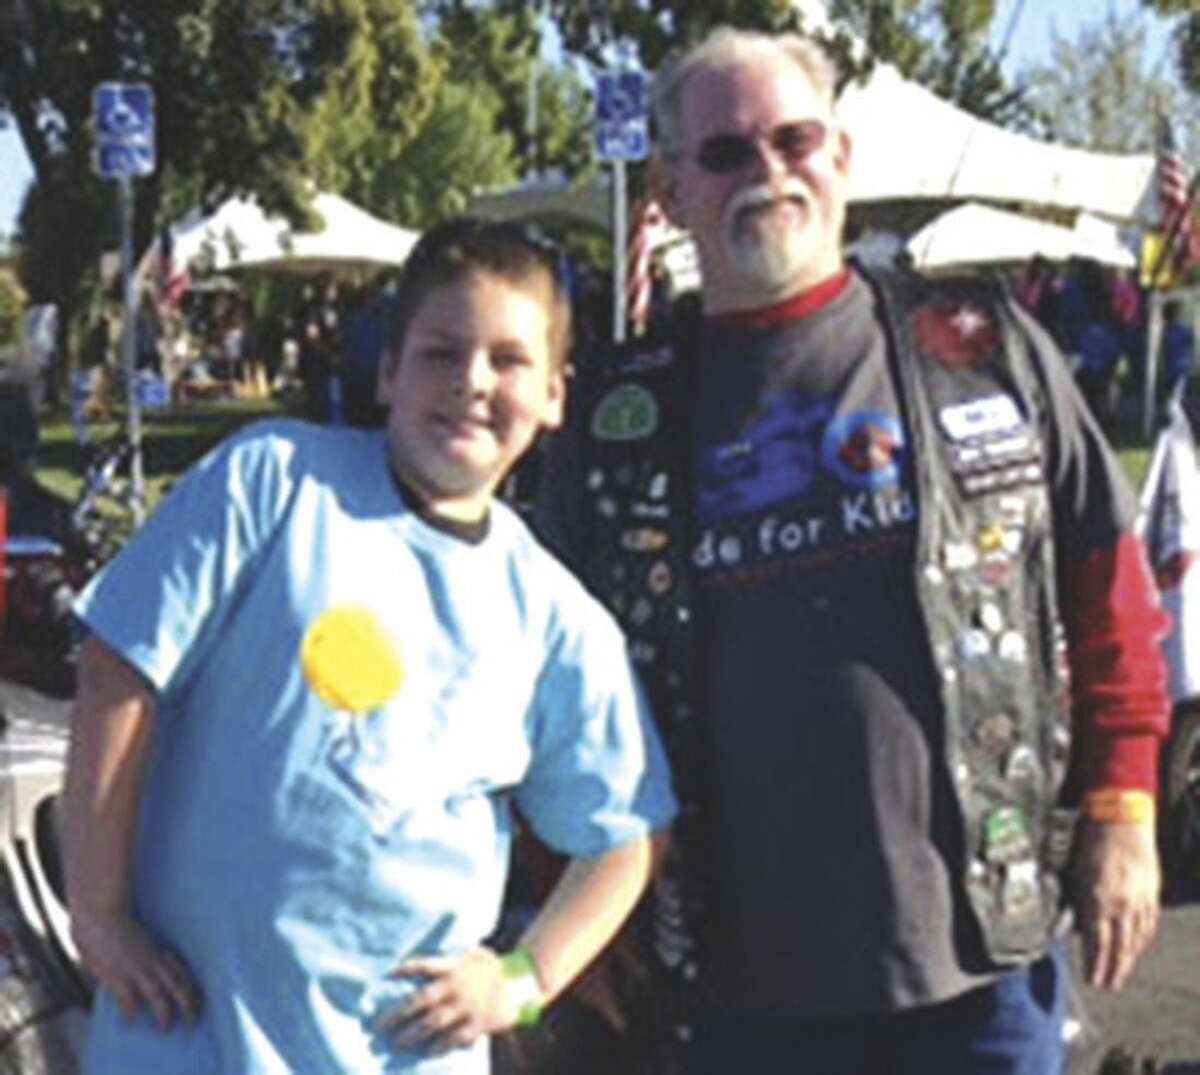 Contributed photo Star Elias, left, and his VIP escort, unidentified, smile before the Northern California Ride for Kids.